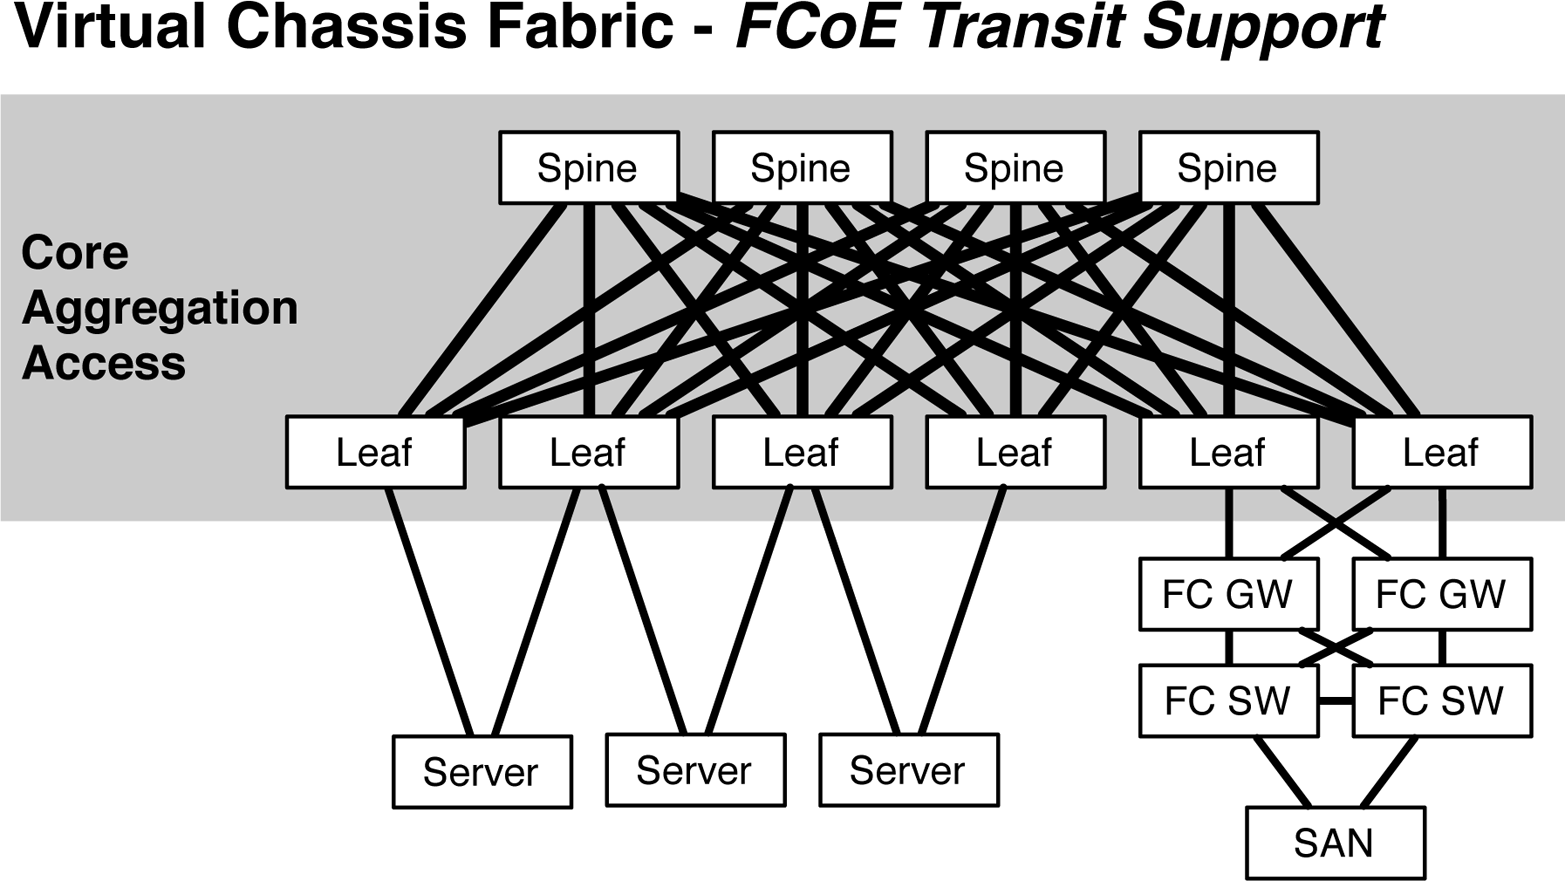 FCoE transit with VCF